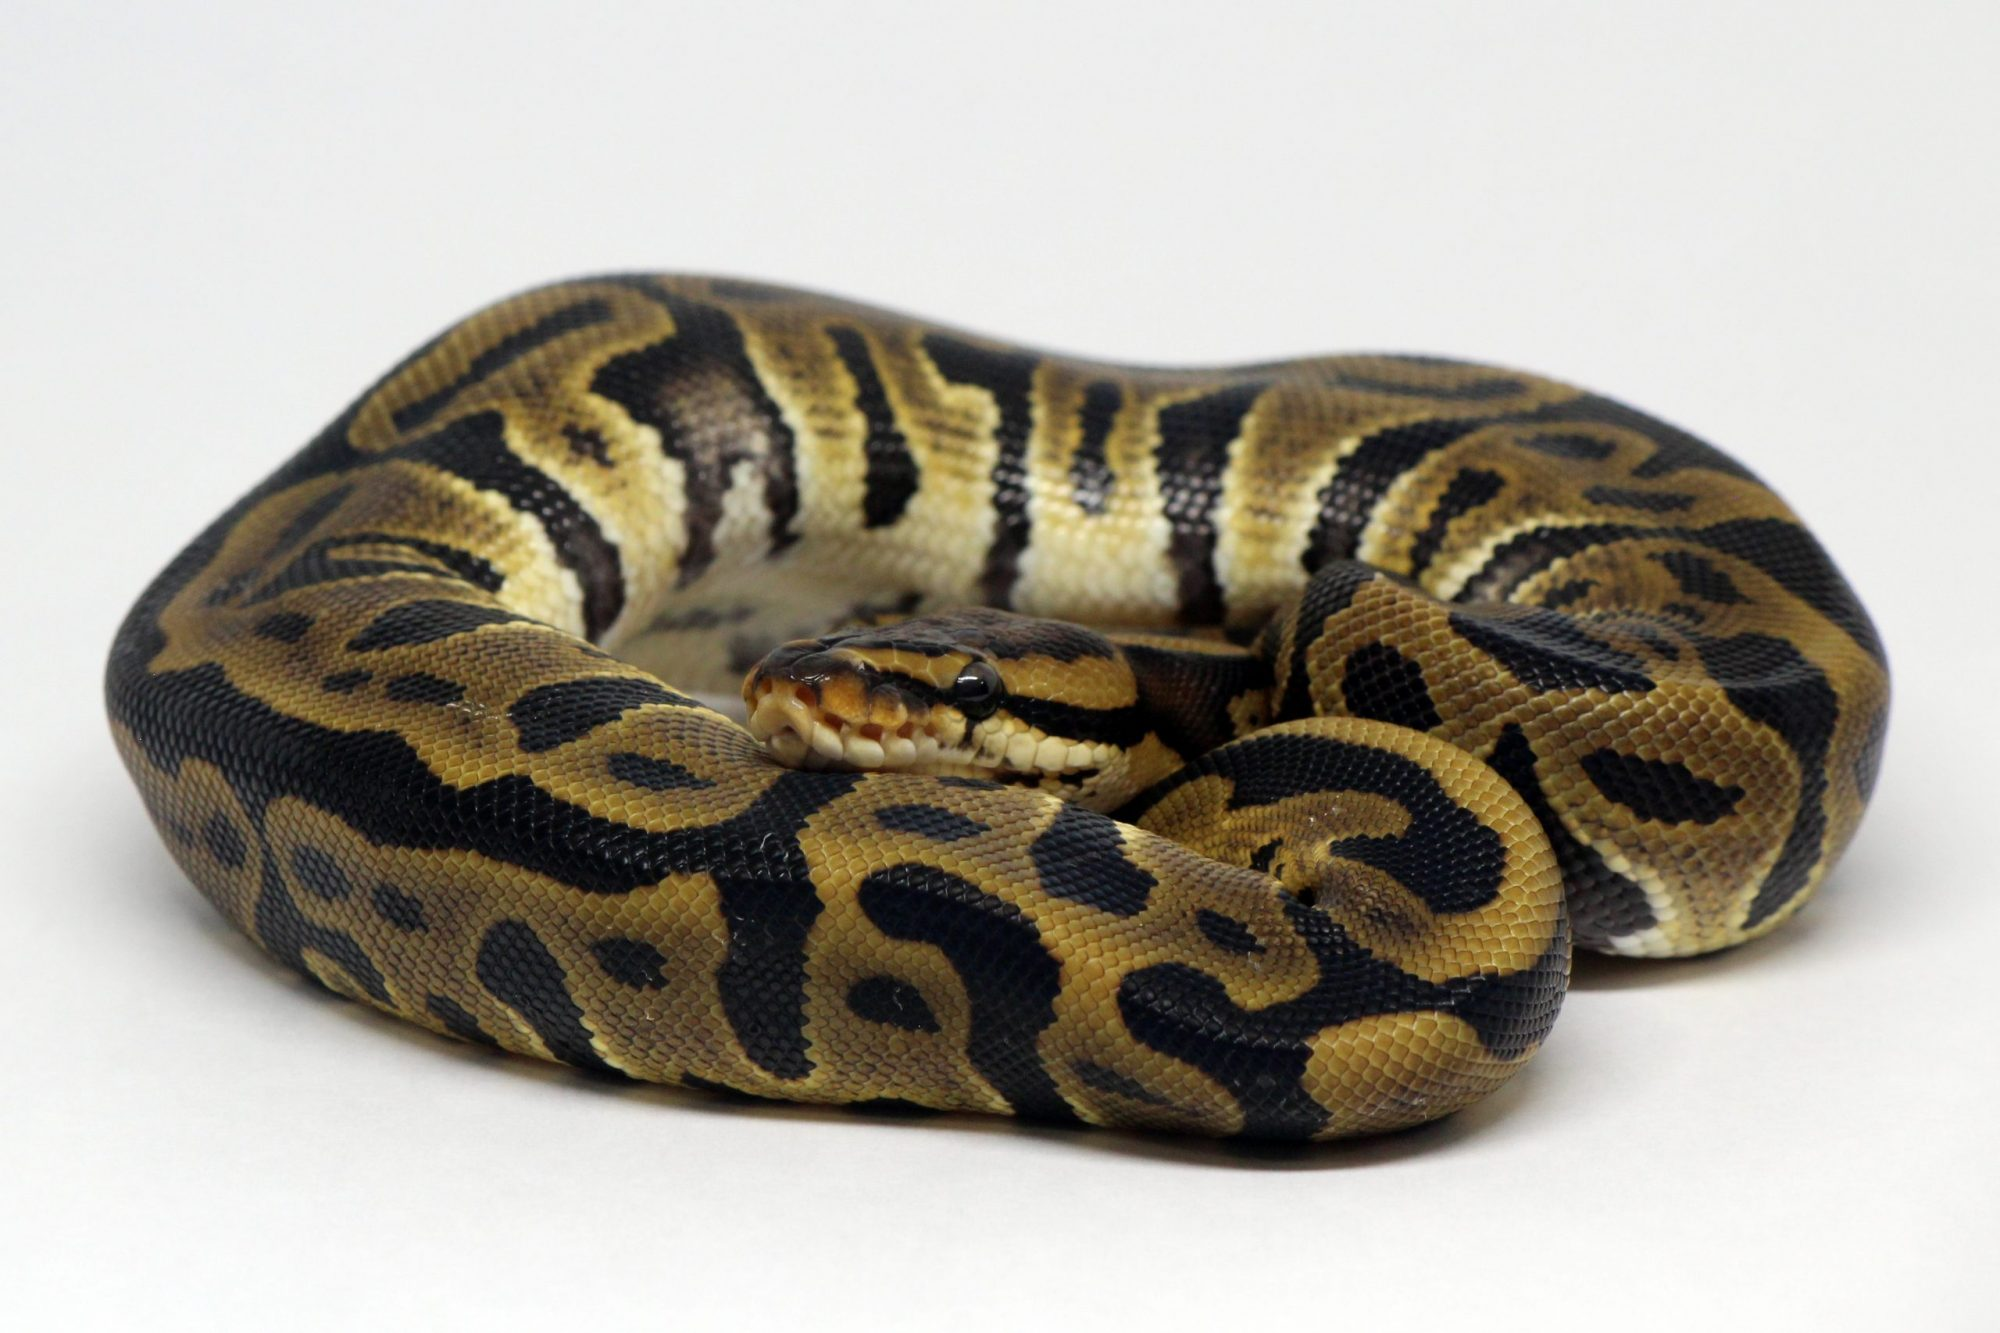 Leopard Ball Python Het Clown Morph Genetic Snake BHB NERD